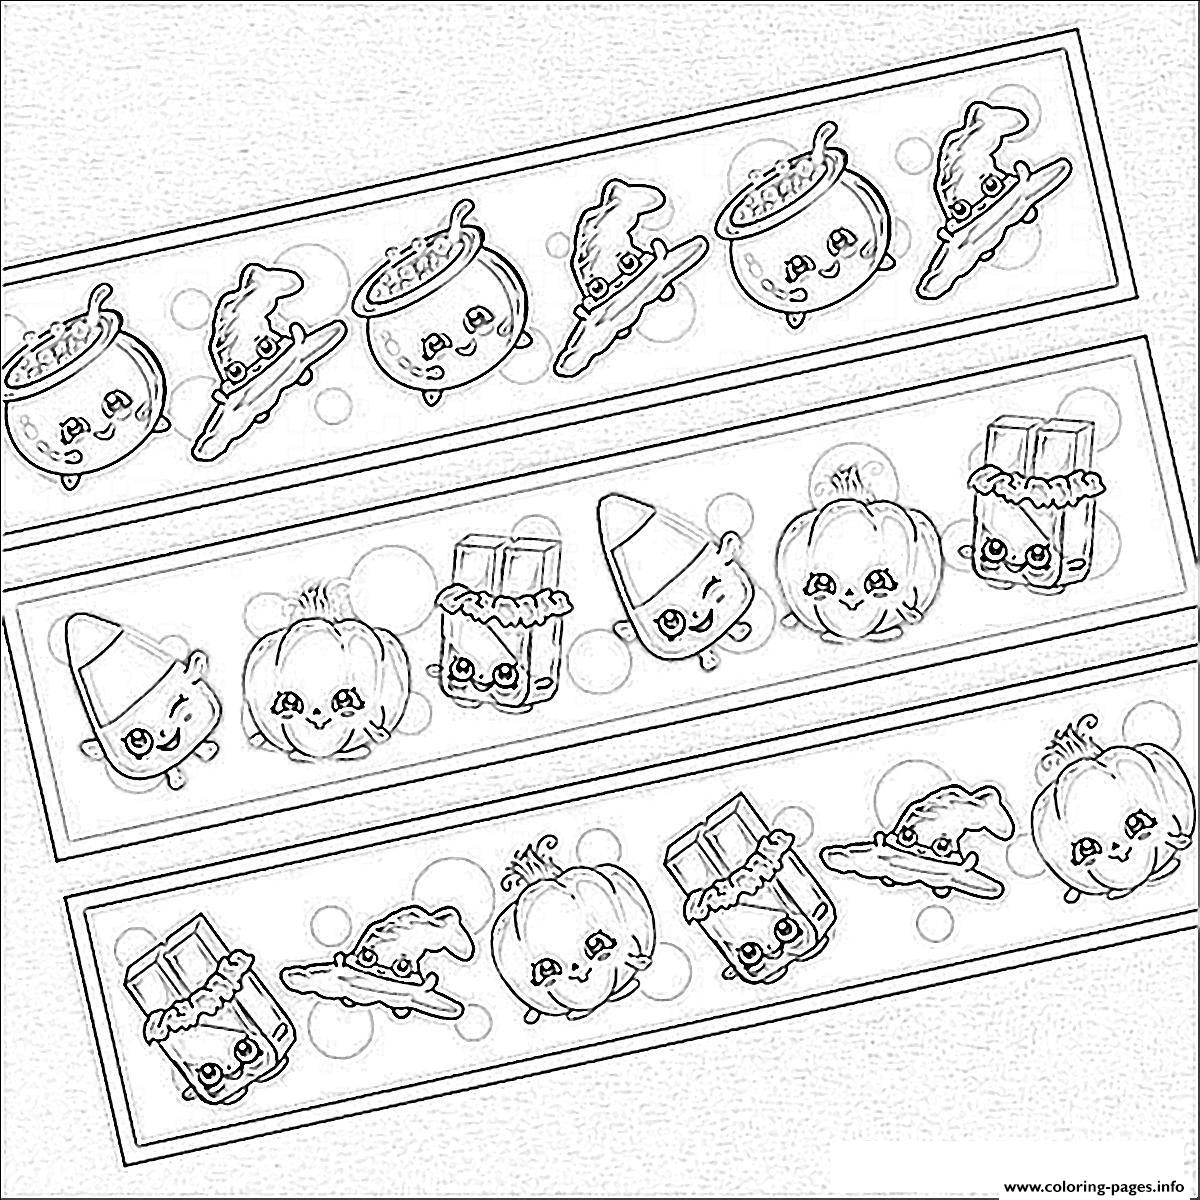 Shopkins Halloween Chocolate Pumpkins Kids Coloring Pages Print Download 471 Prints